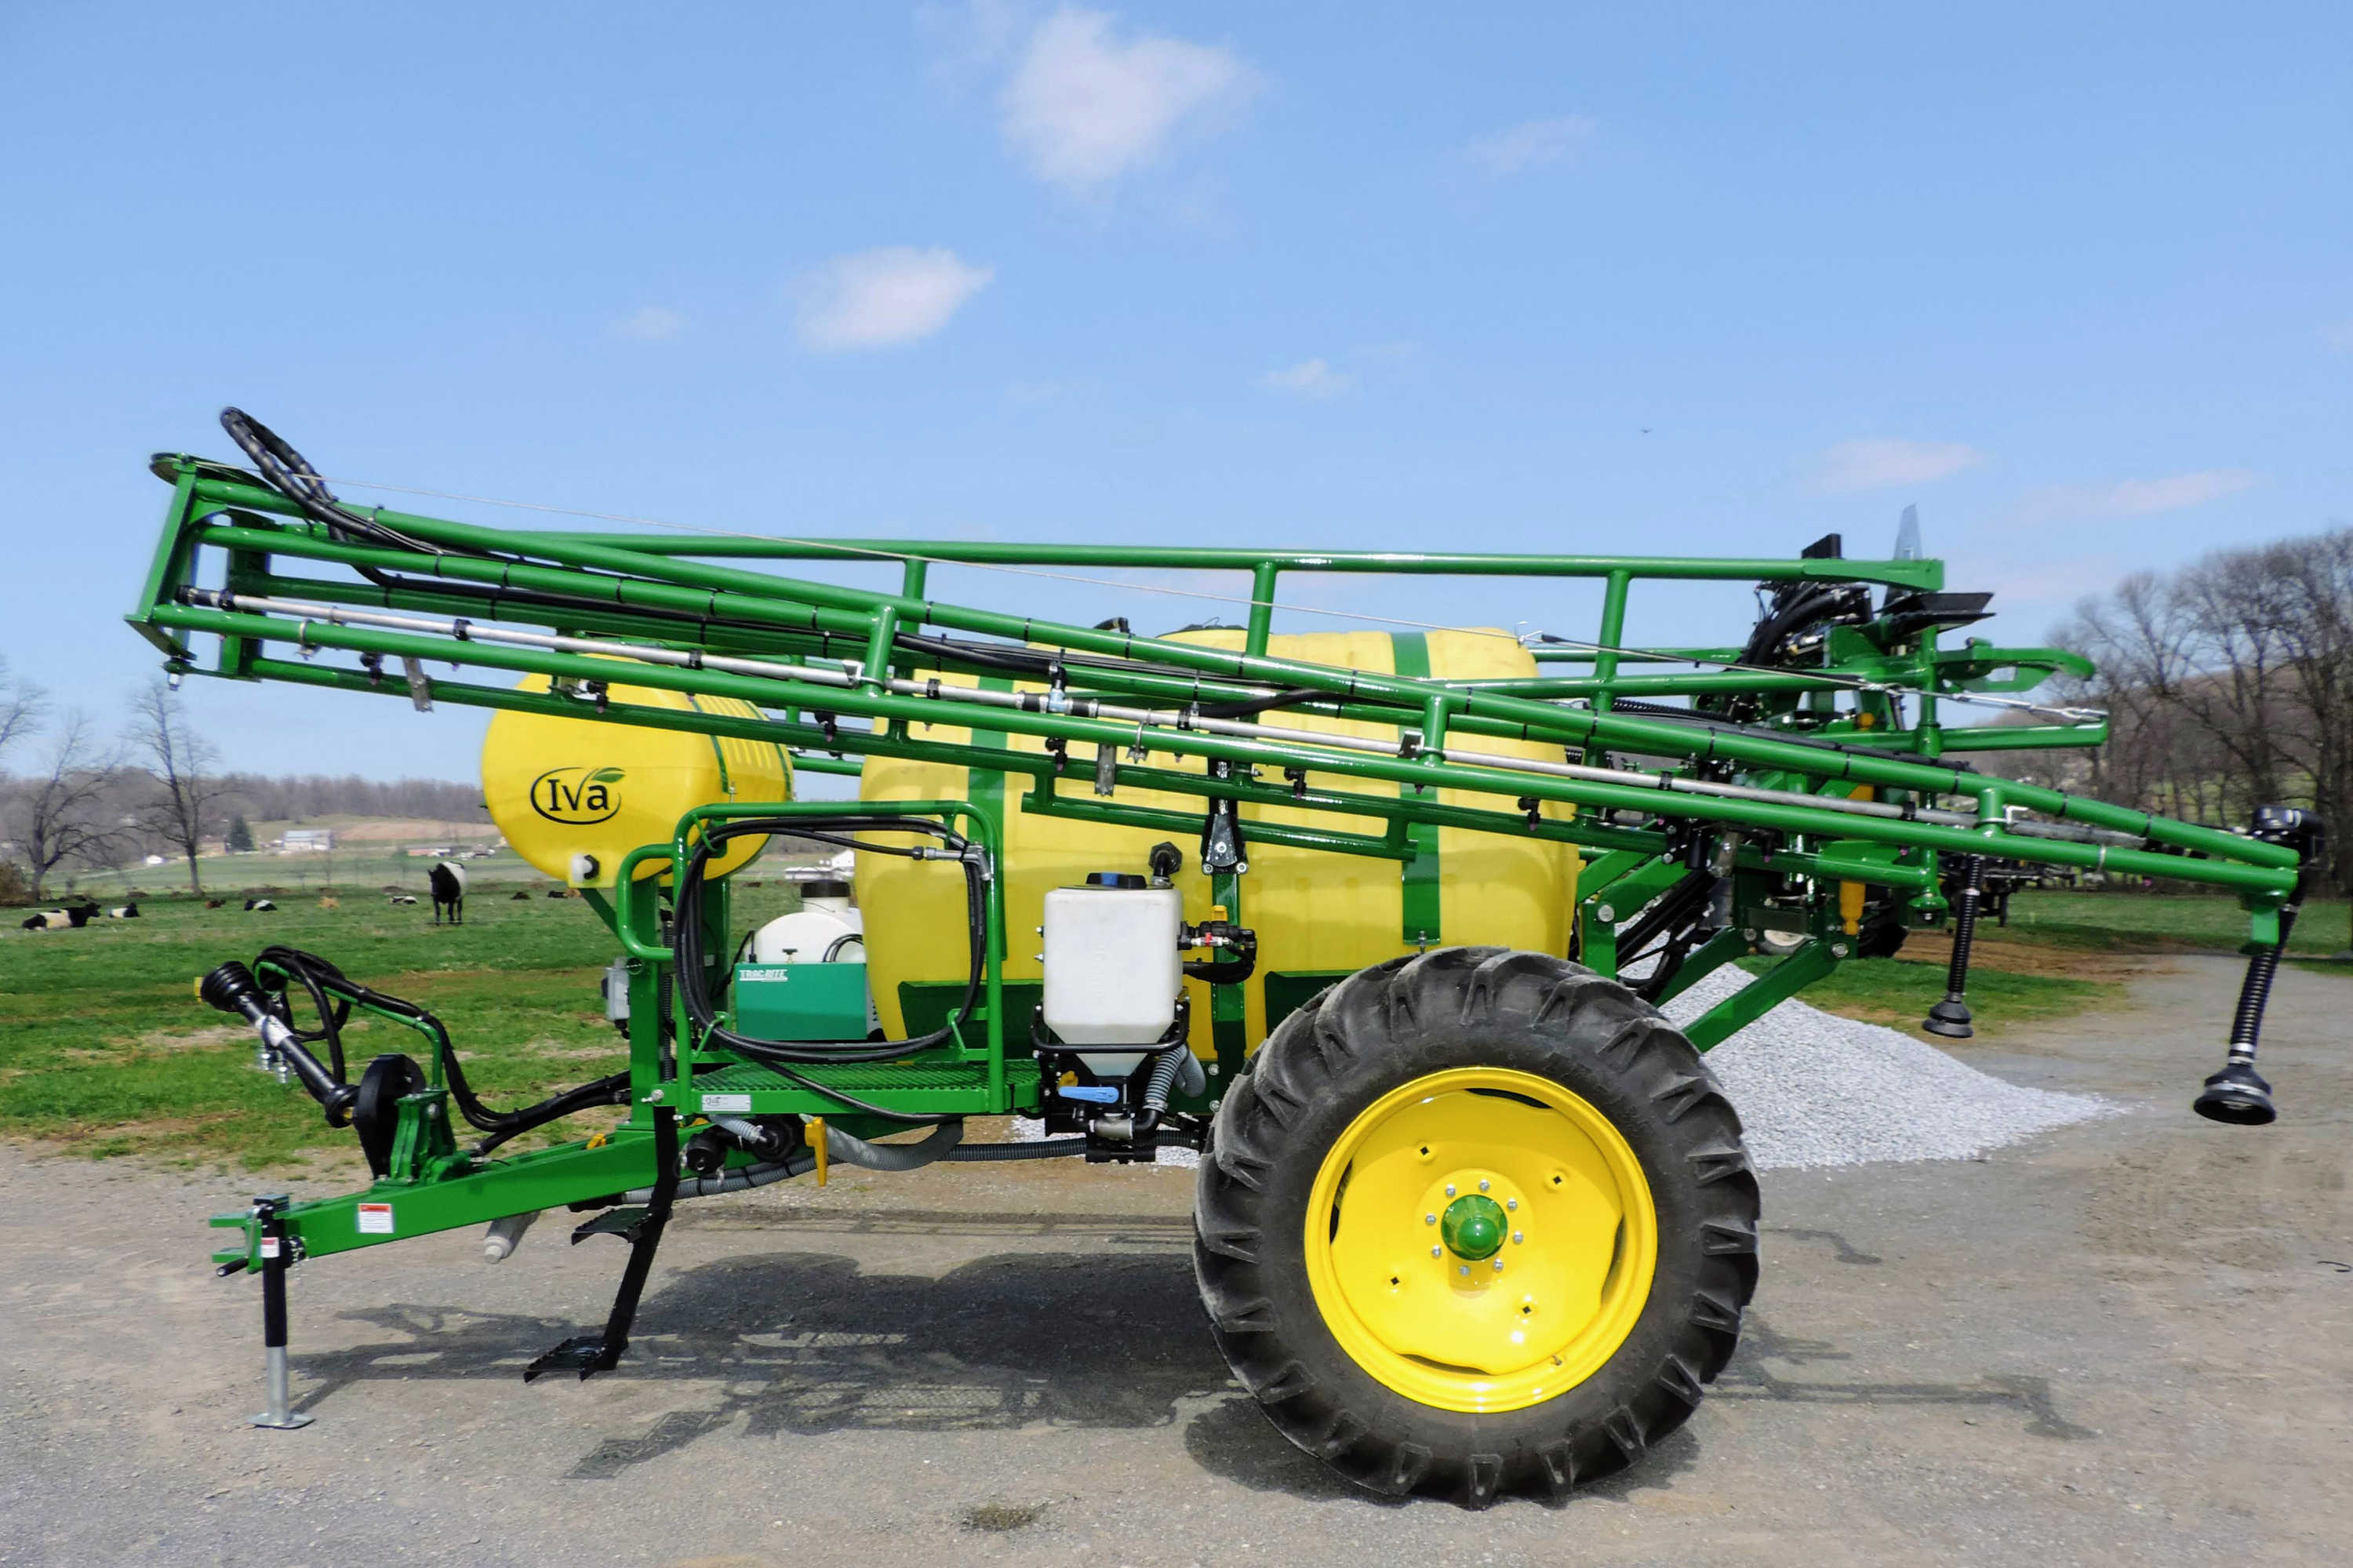 500 gallon Trailer Field Sprayer with 60' AirRide Booms